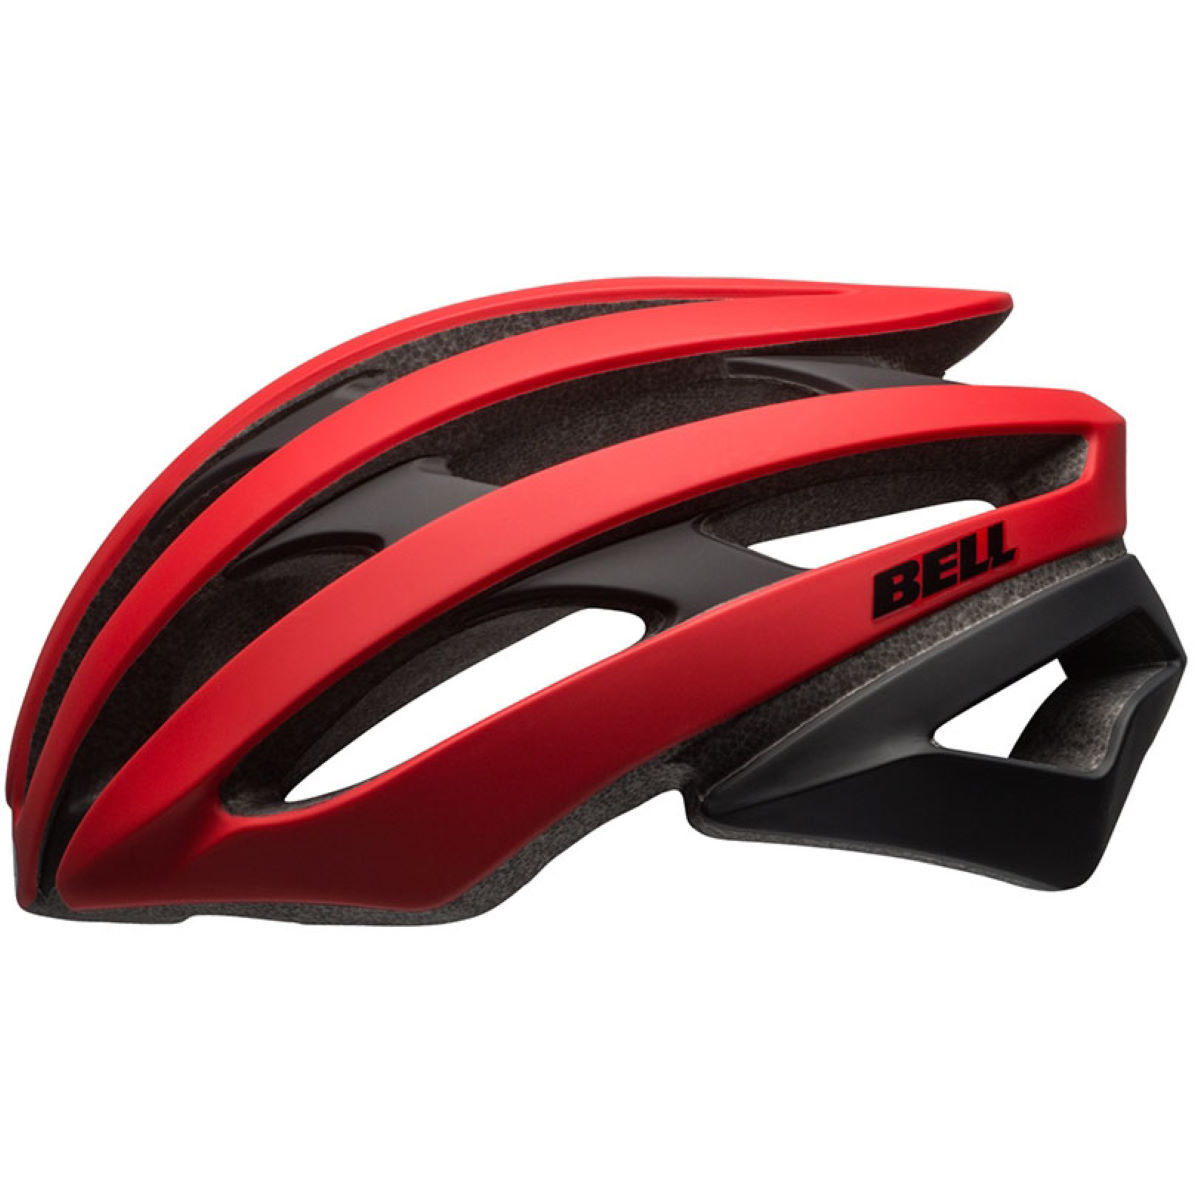 Bell Stratus Road Helmet - Clearance Price for Red in Small.